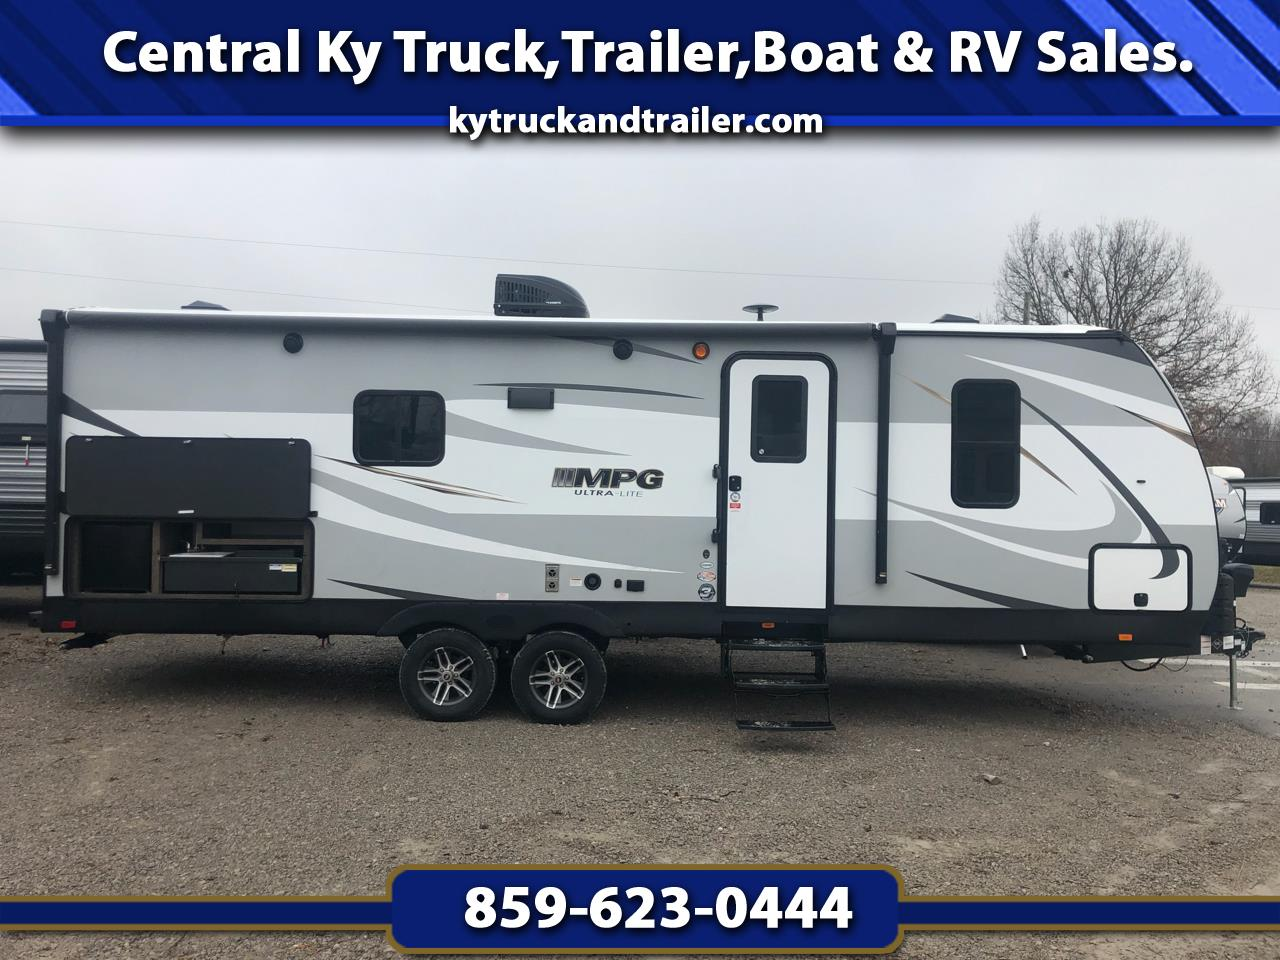 2019 Cruiser RV MPG 2550 New Floorplan